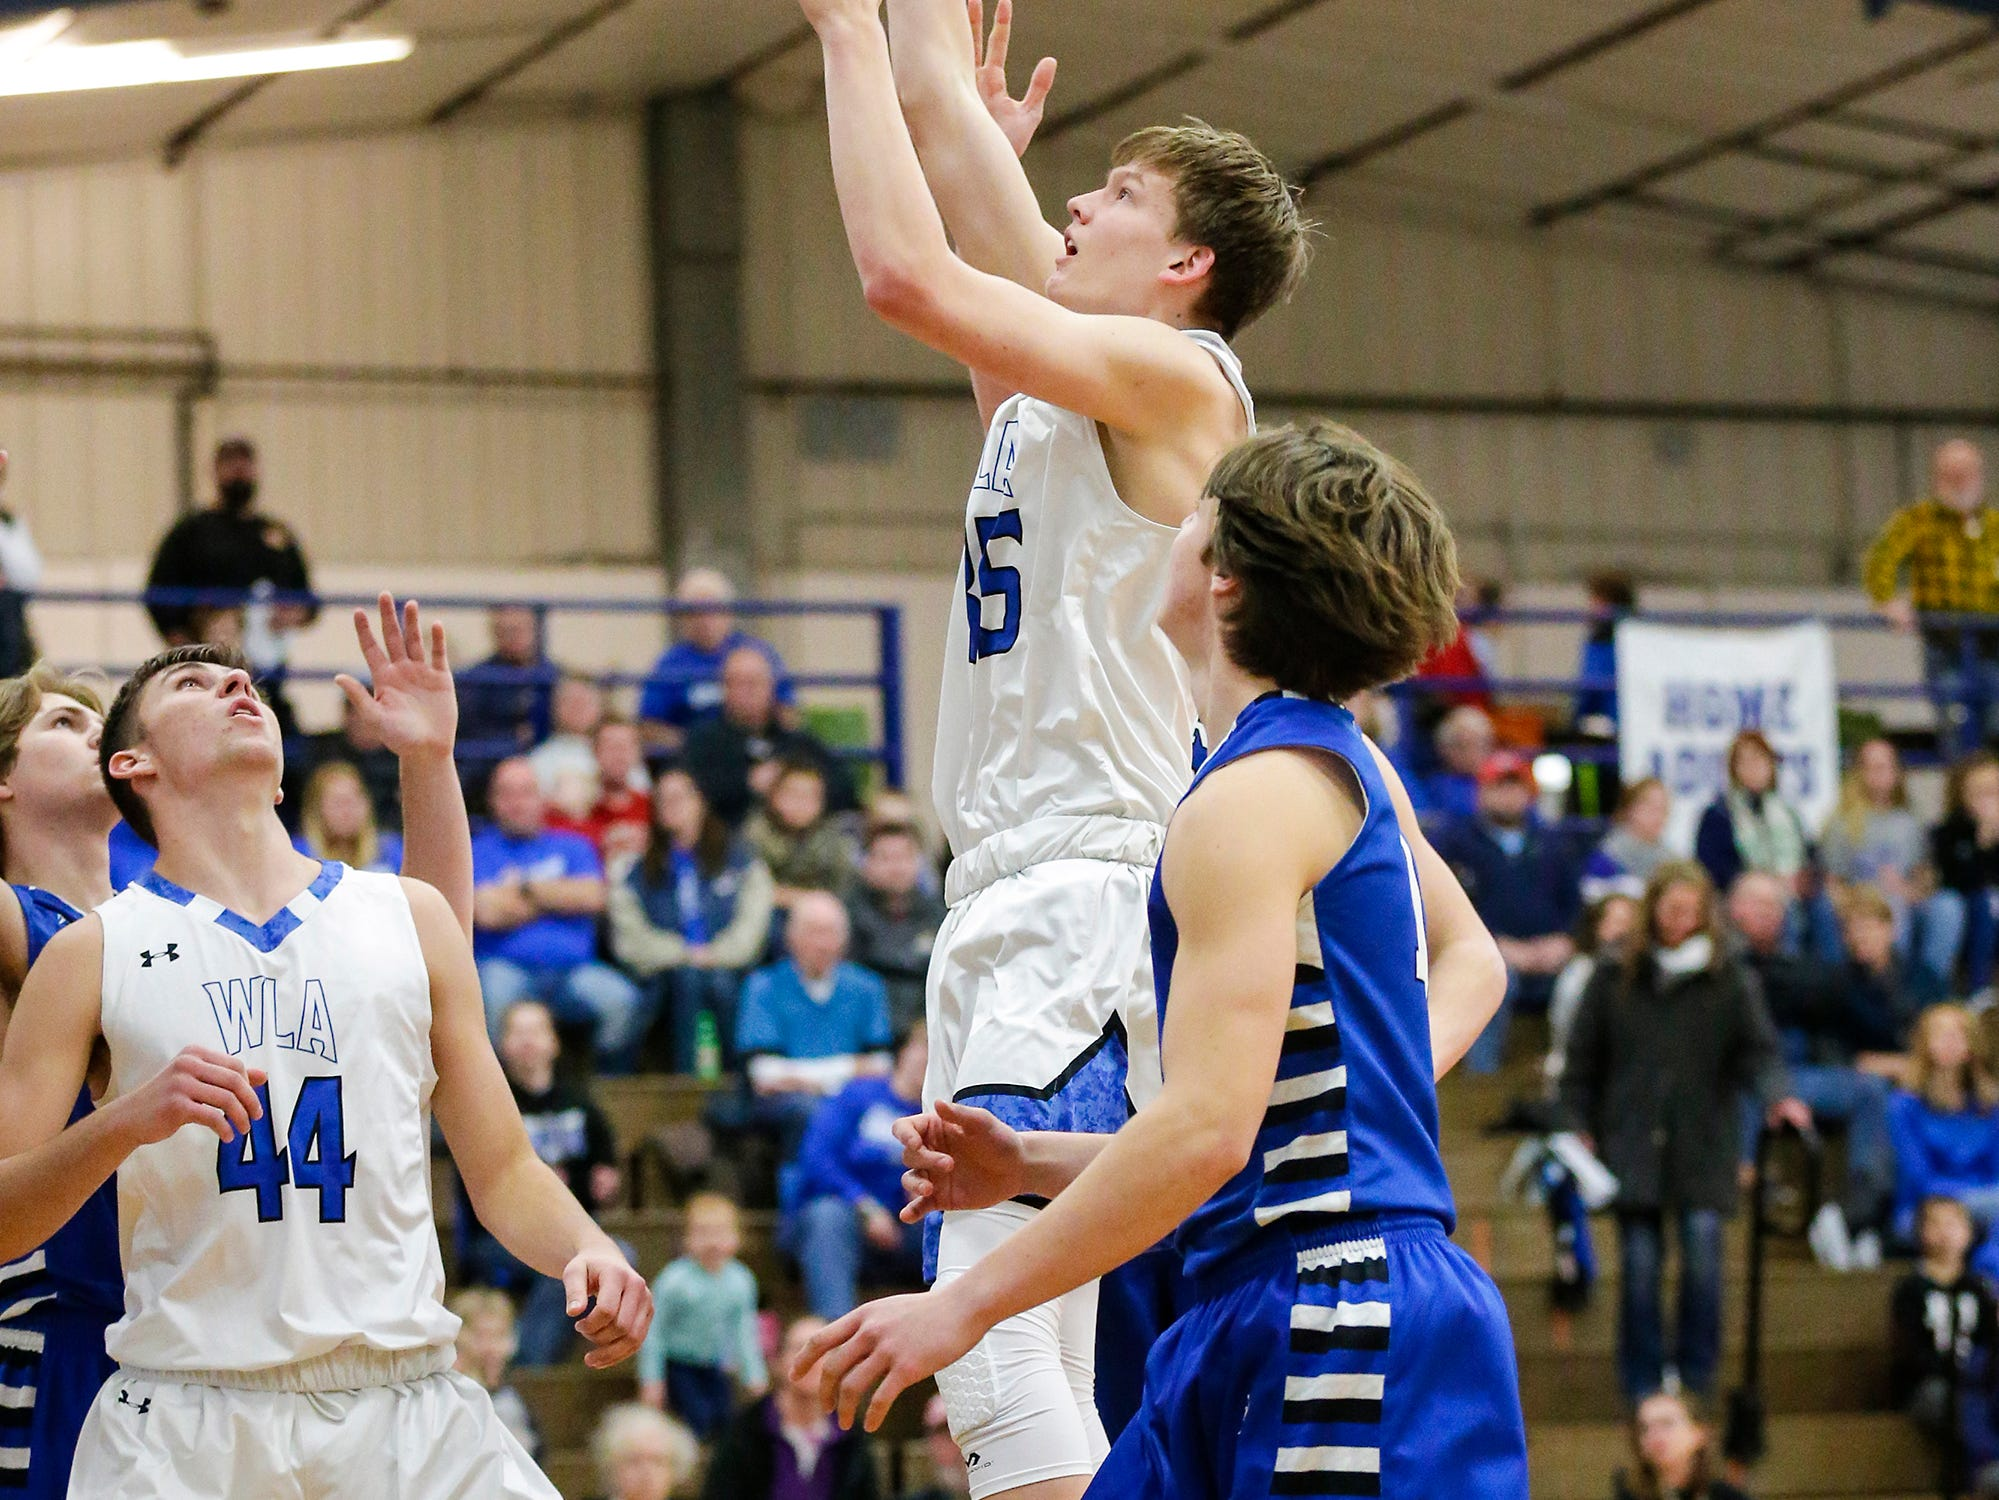 Winnebago Lutheran Academy boys basketball's Gabe Pruss goes up for a basket against St. Mary's Springs Academy Tuesday, January 8, 2019 during their game in Fond du Lac. Winnebago Lutheran Academy won the game 69-66. Doug Raflik/USA TODAY NETWORK-Wisconsin